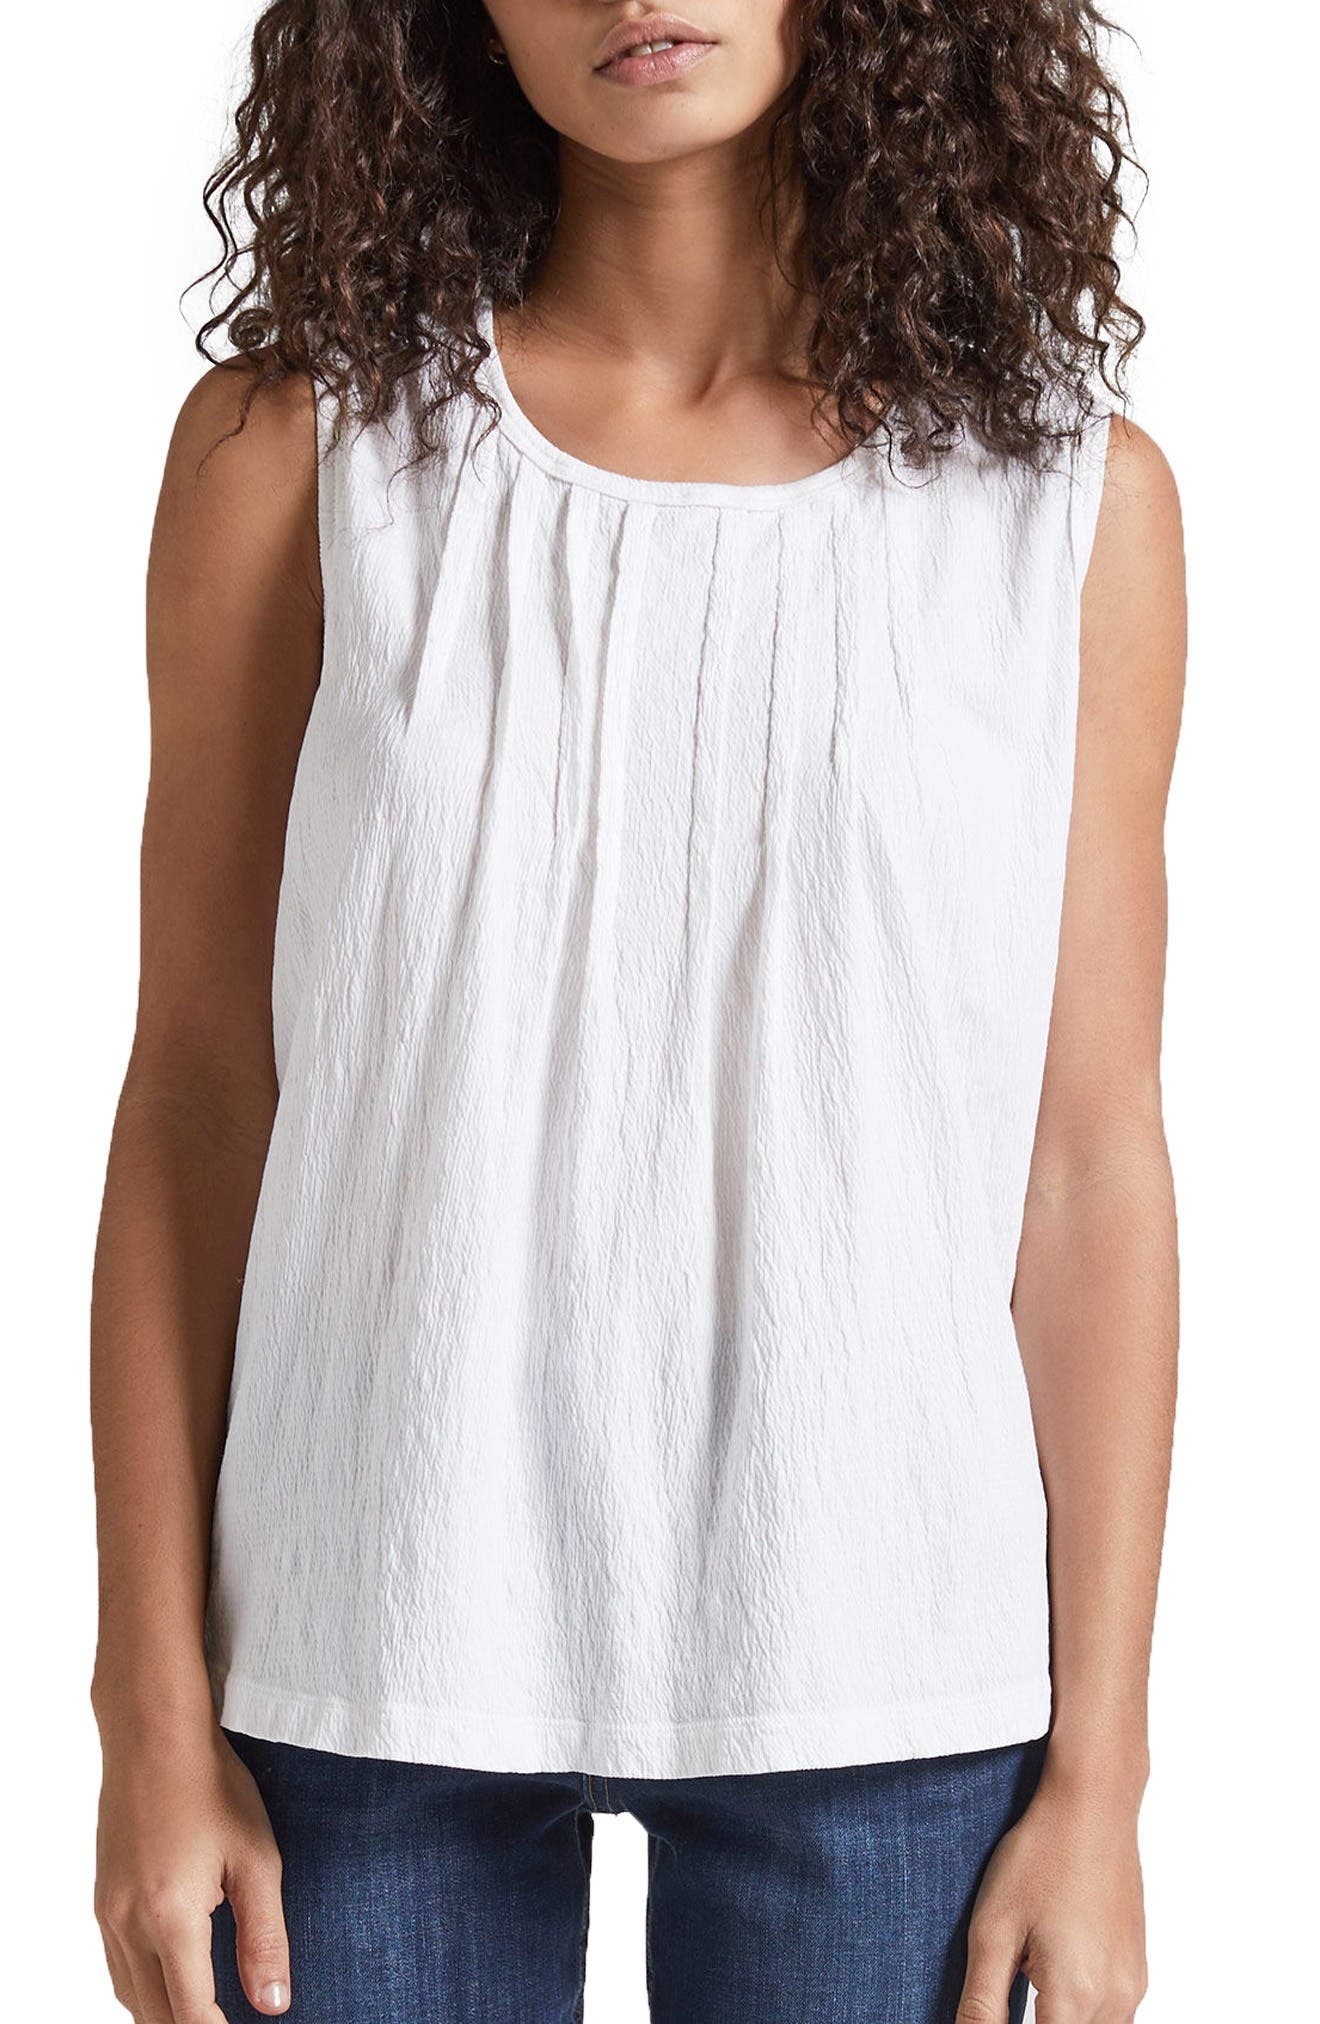 CURRENT/ELLIOTT The Pintuck Muscle Tee